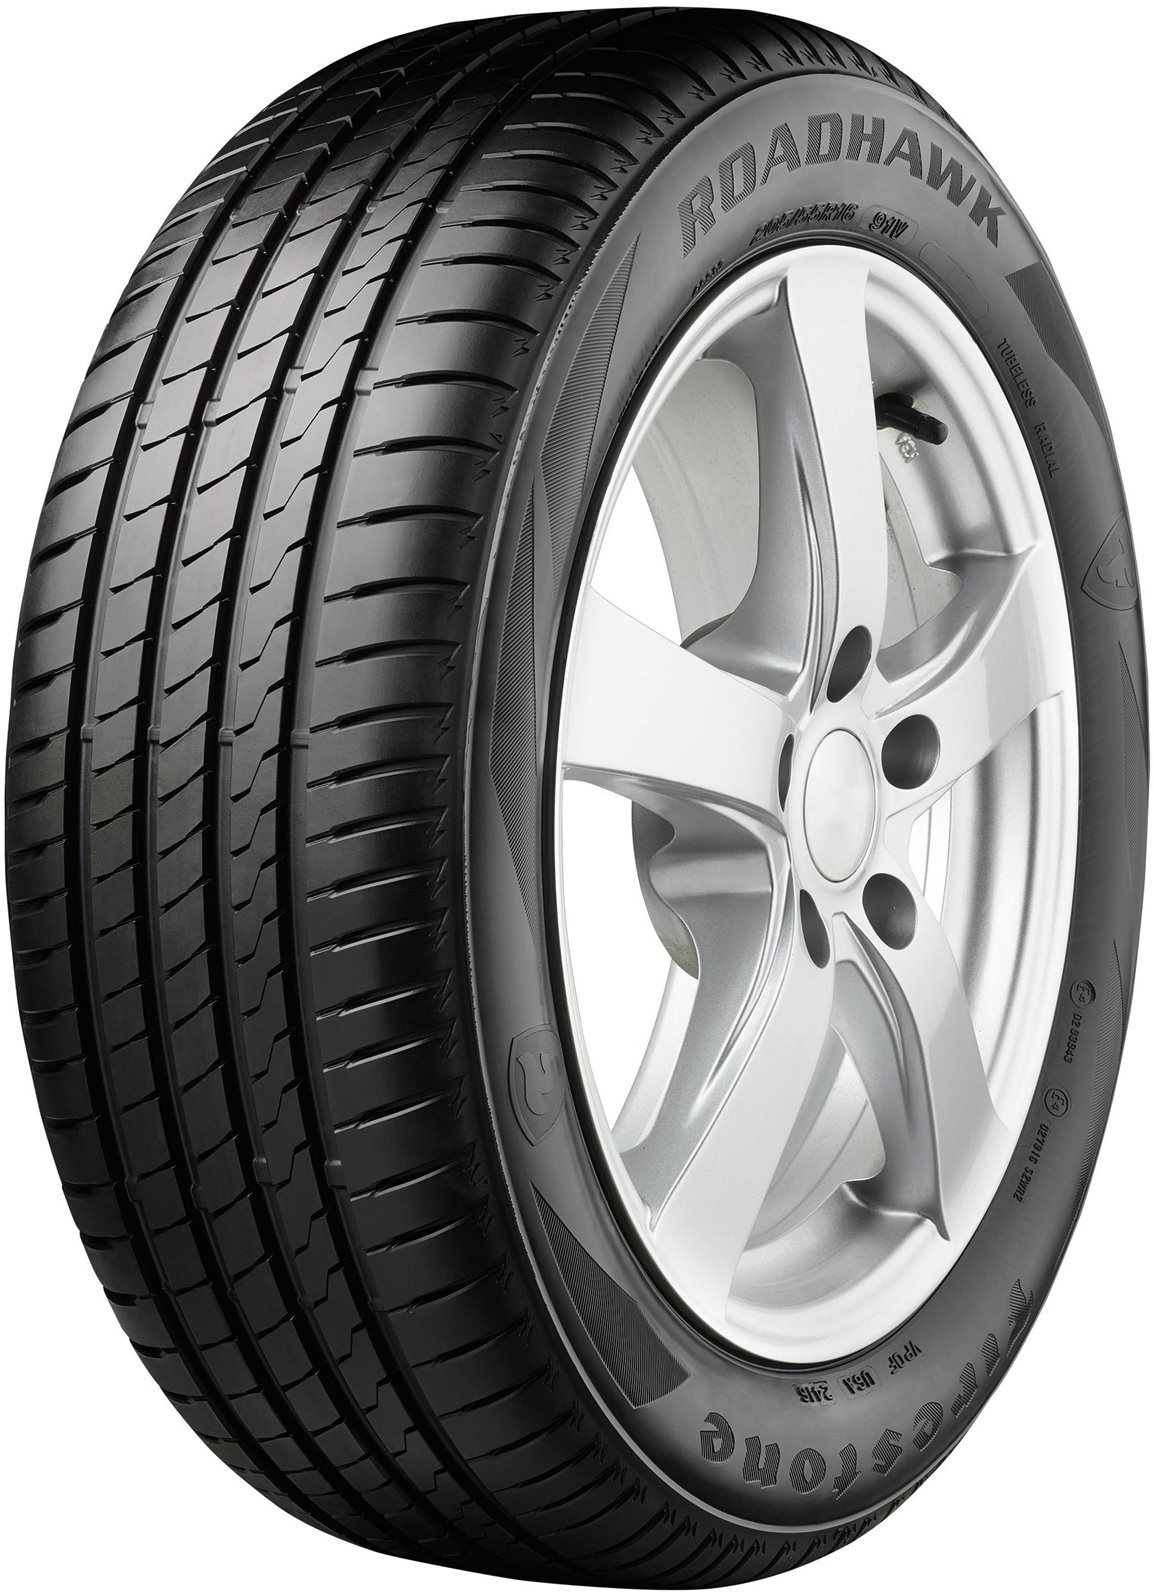 Firestone RoadHawk 235/65R17 108V